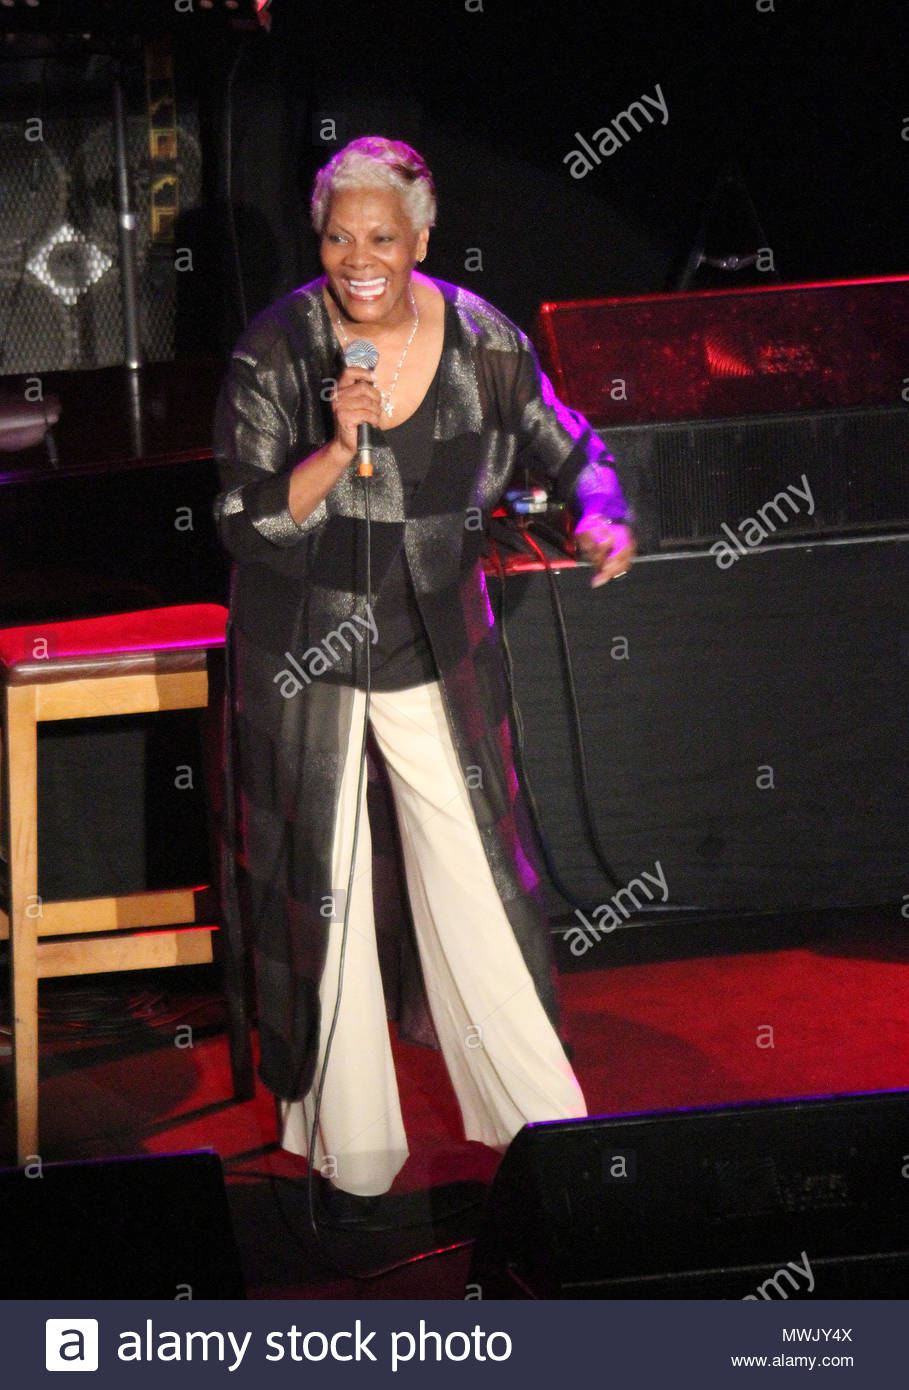 On Stage and in the Movies by Dionne Warwick - Rate Your Music